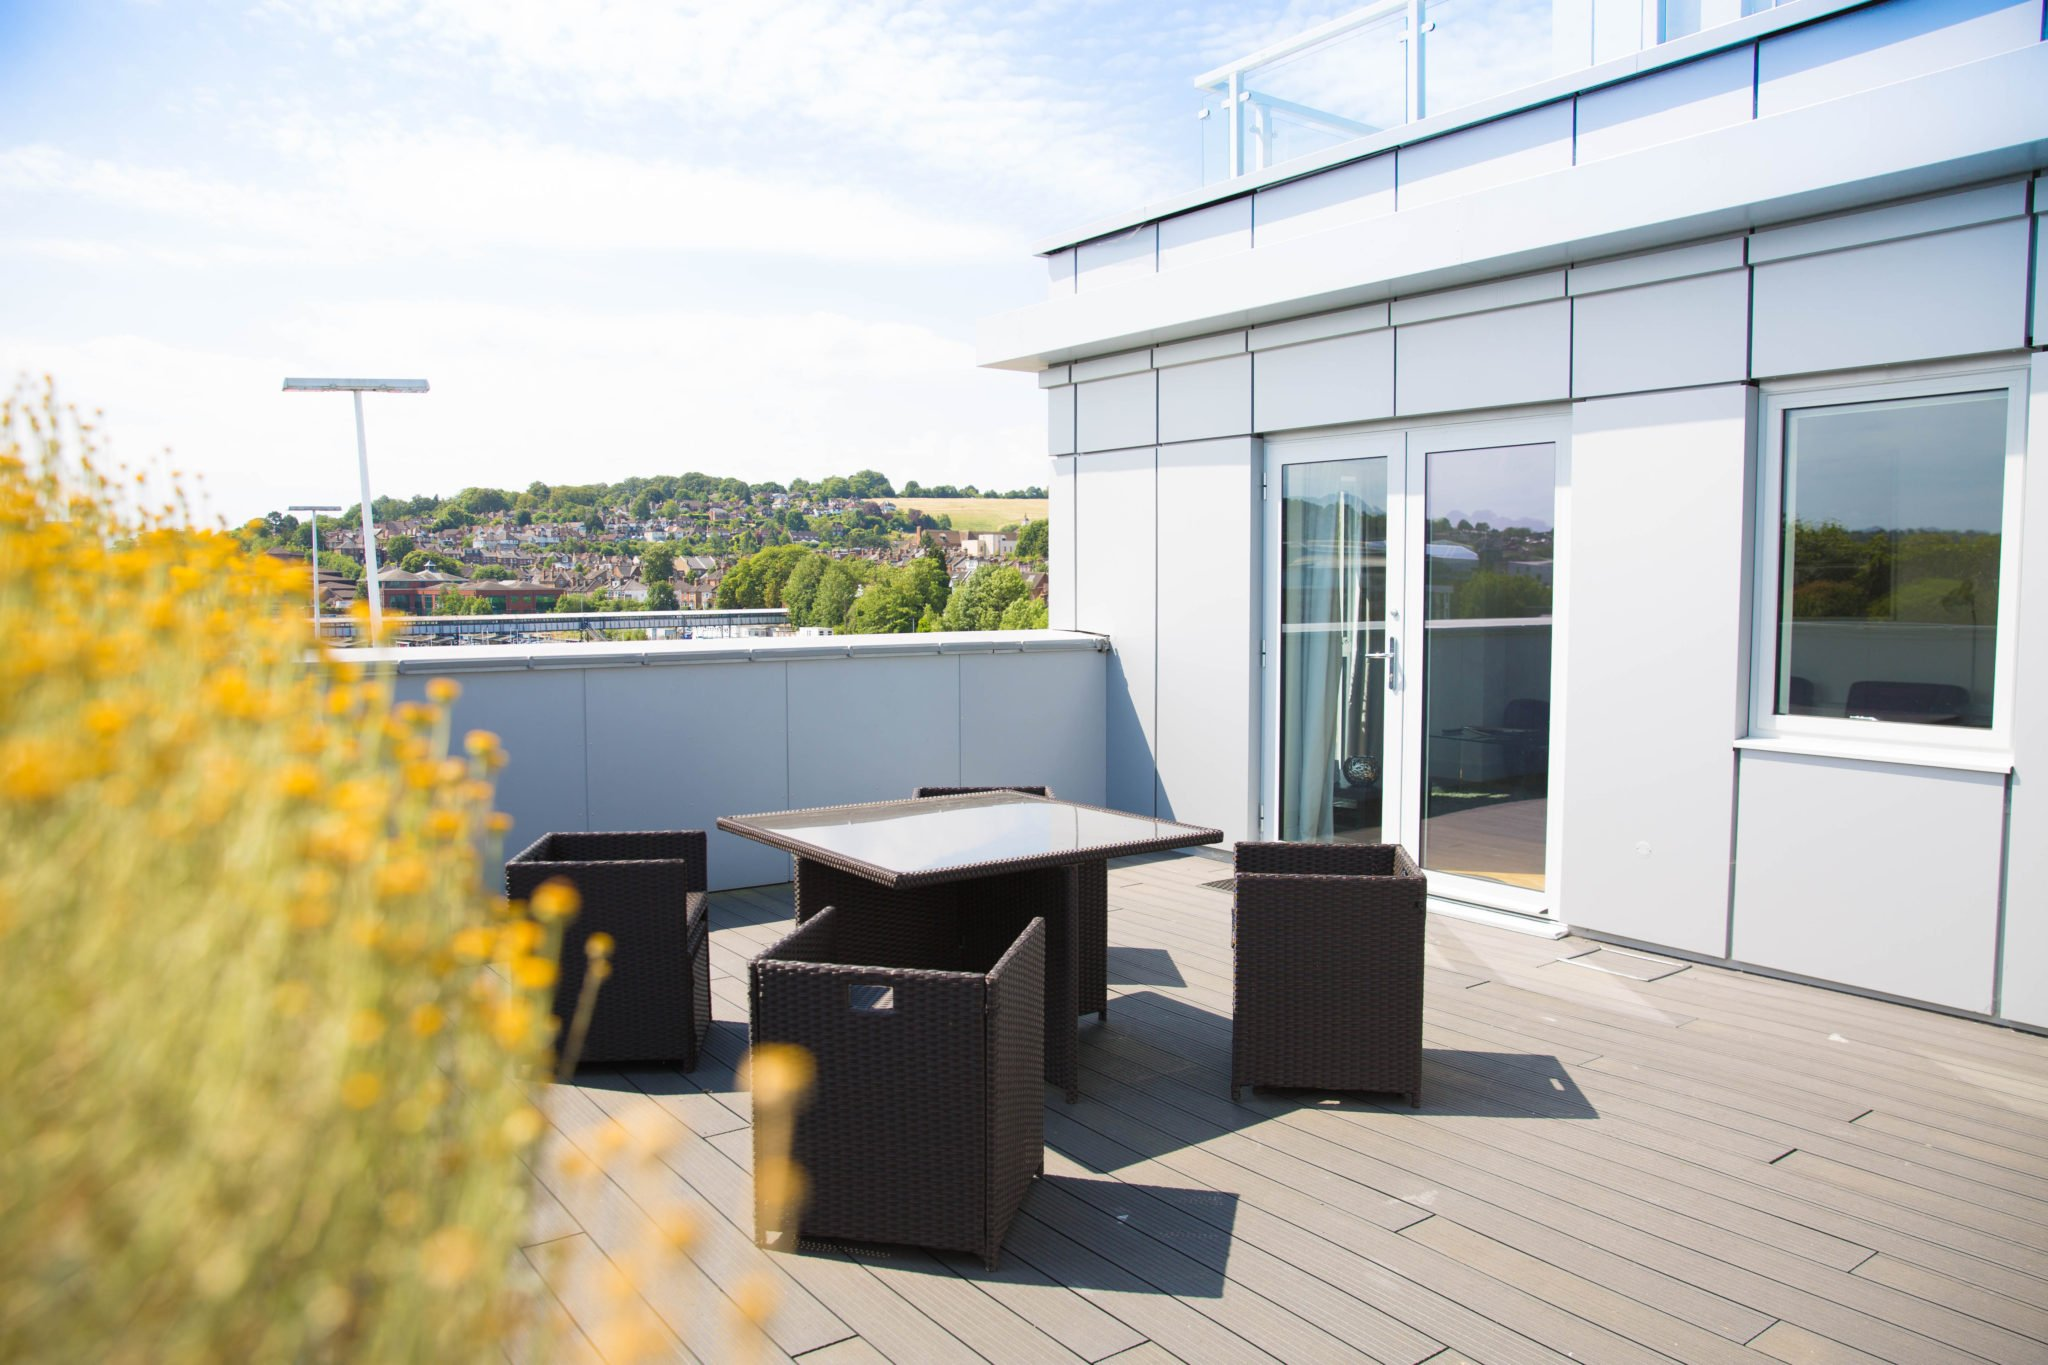 Serviced-Apartments-Hampshire-UK-|-Serviced-Corporate-Accommodation-Guildford-|-Short-Lets-Guildford-|Cheaper-than-Hotel-&-more-space-|-BEST-RATES--BOOK-NOW-|-Urban-Stay